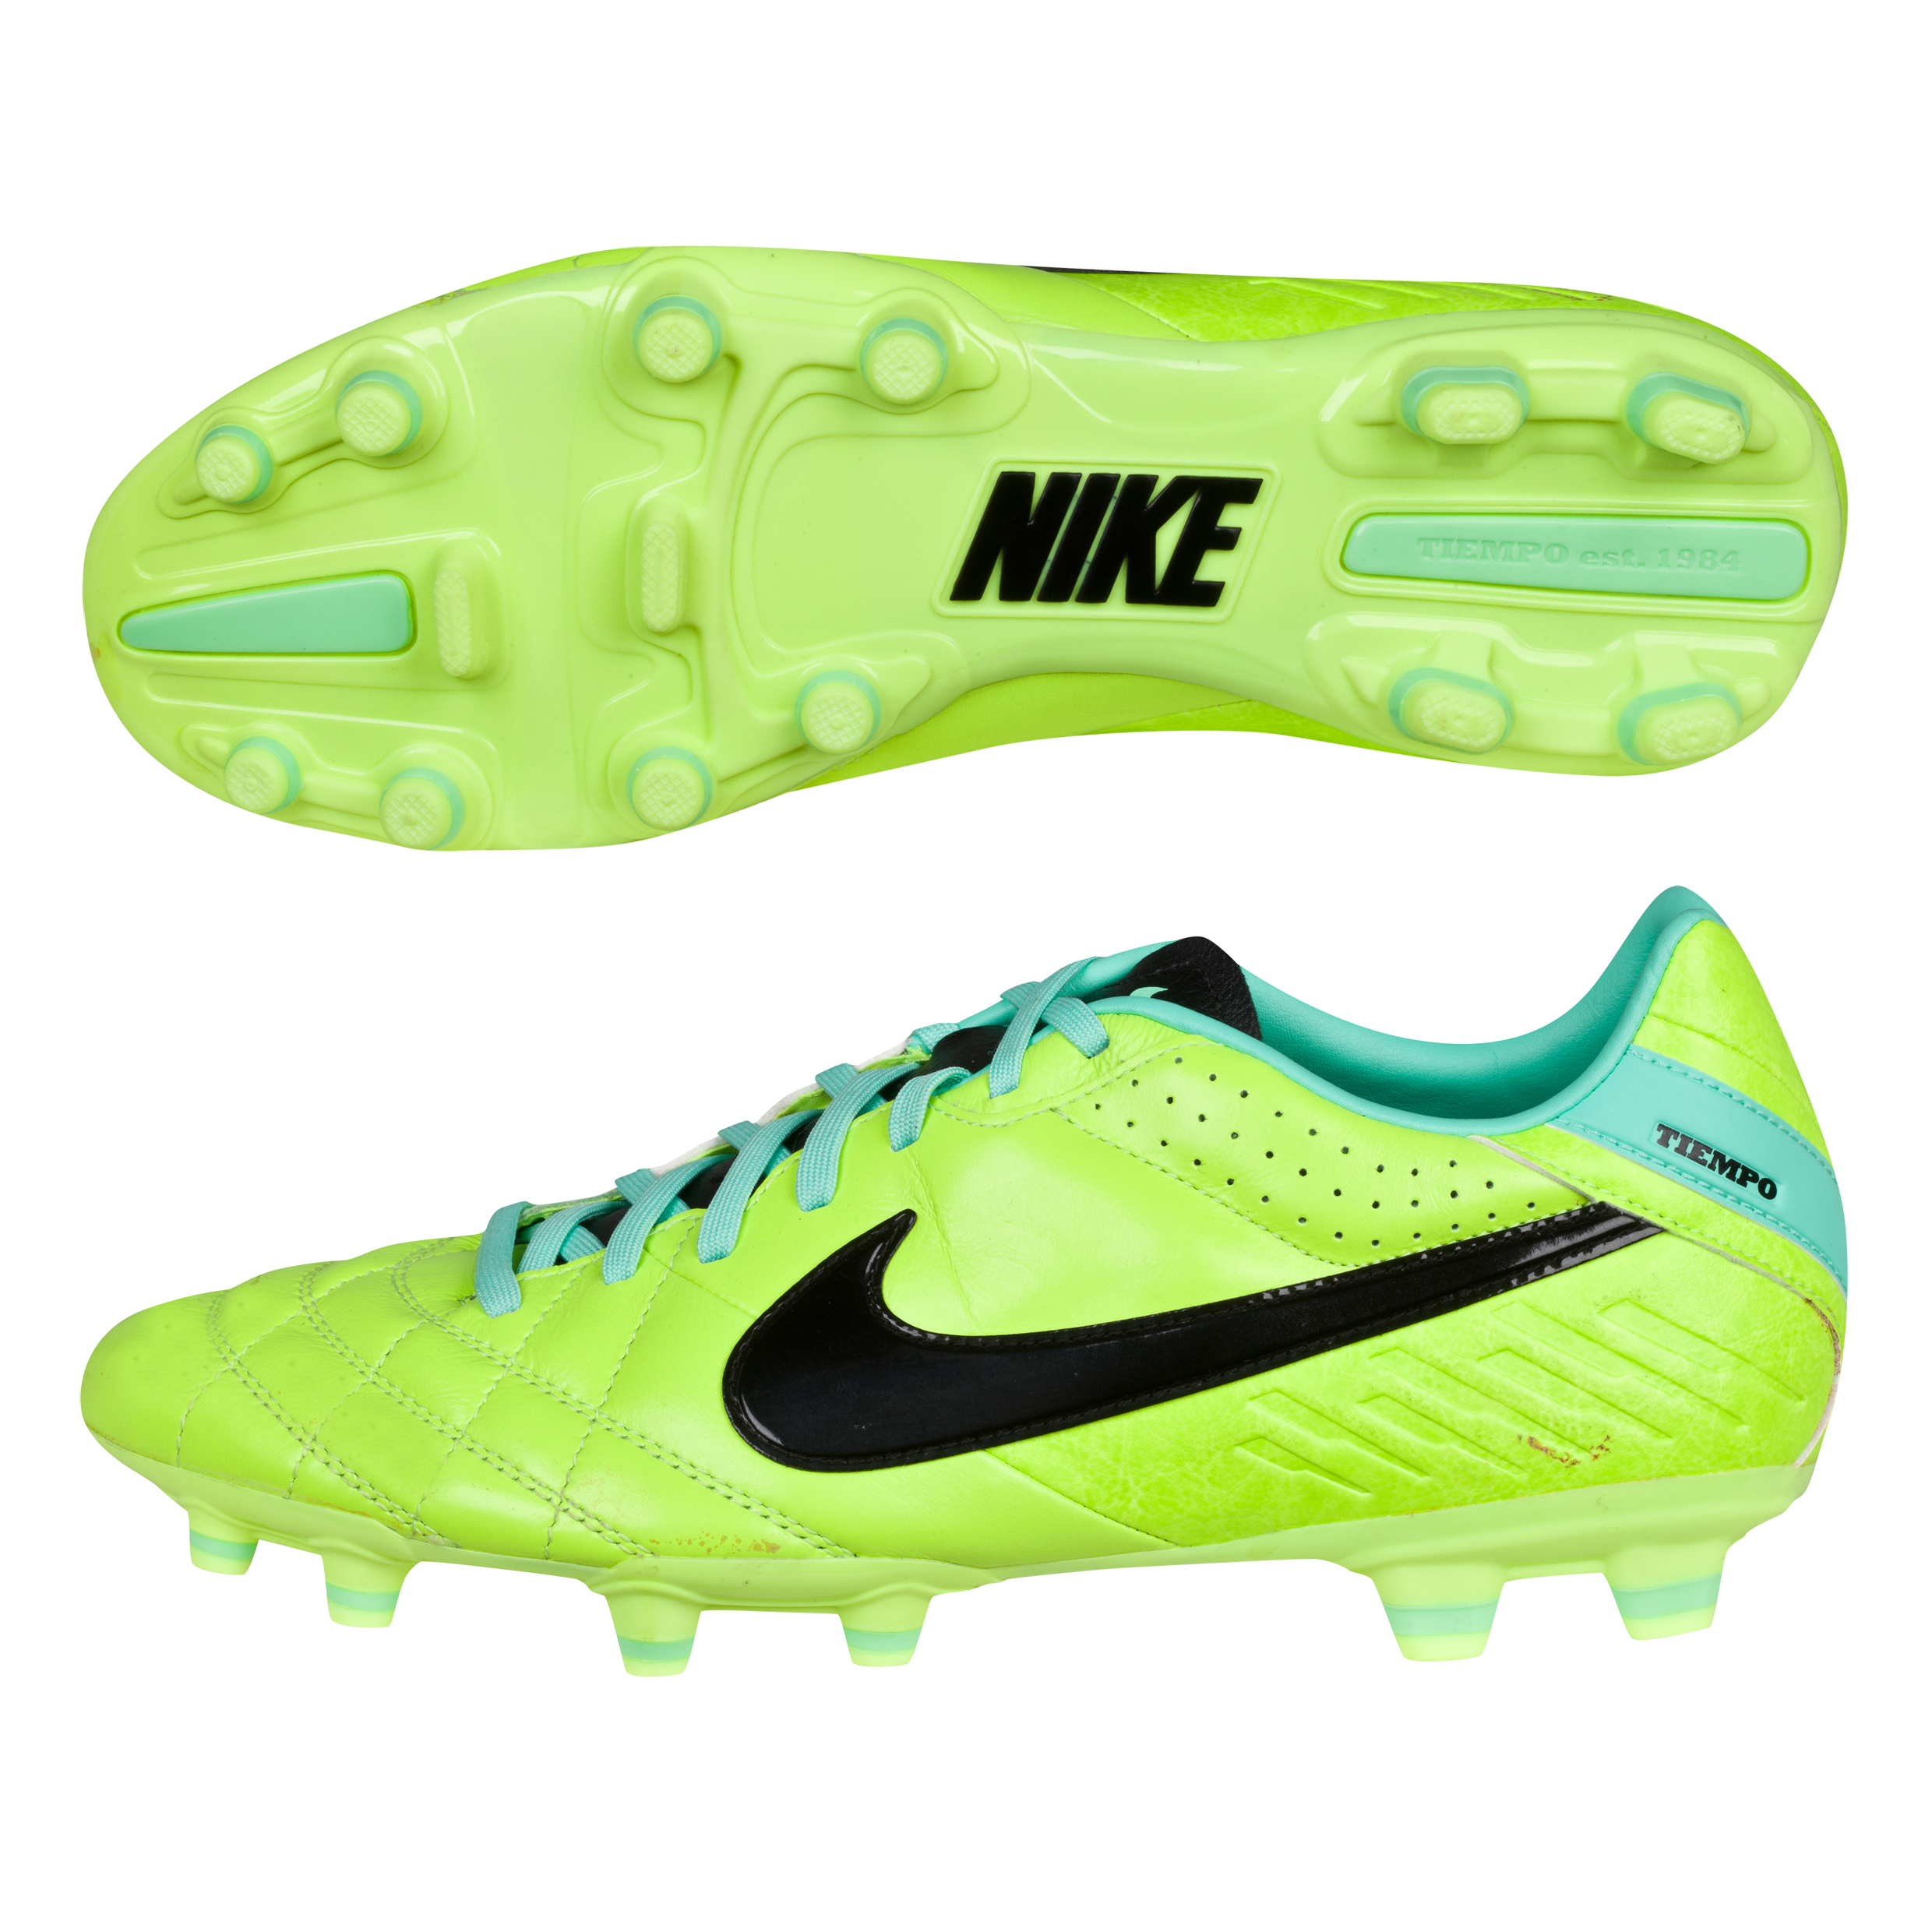 Nike Tiempo Mystic Iv Firm Ground Football Boots- Volt/Black/Green Glow Lt Green